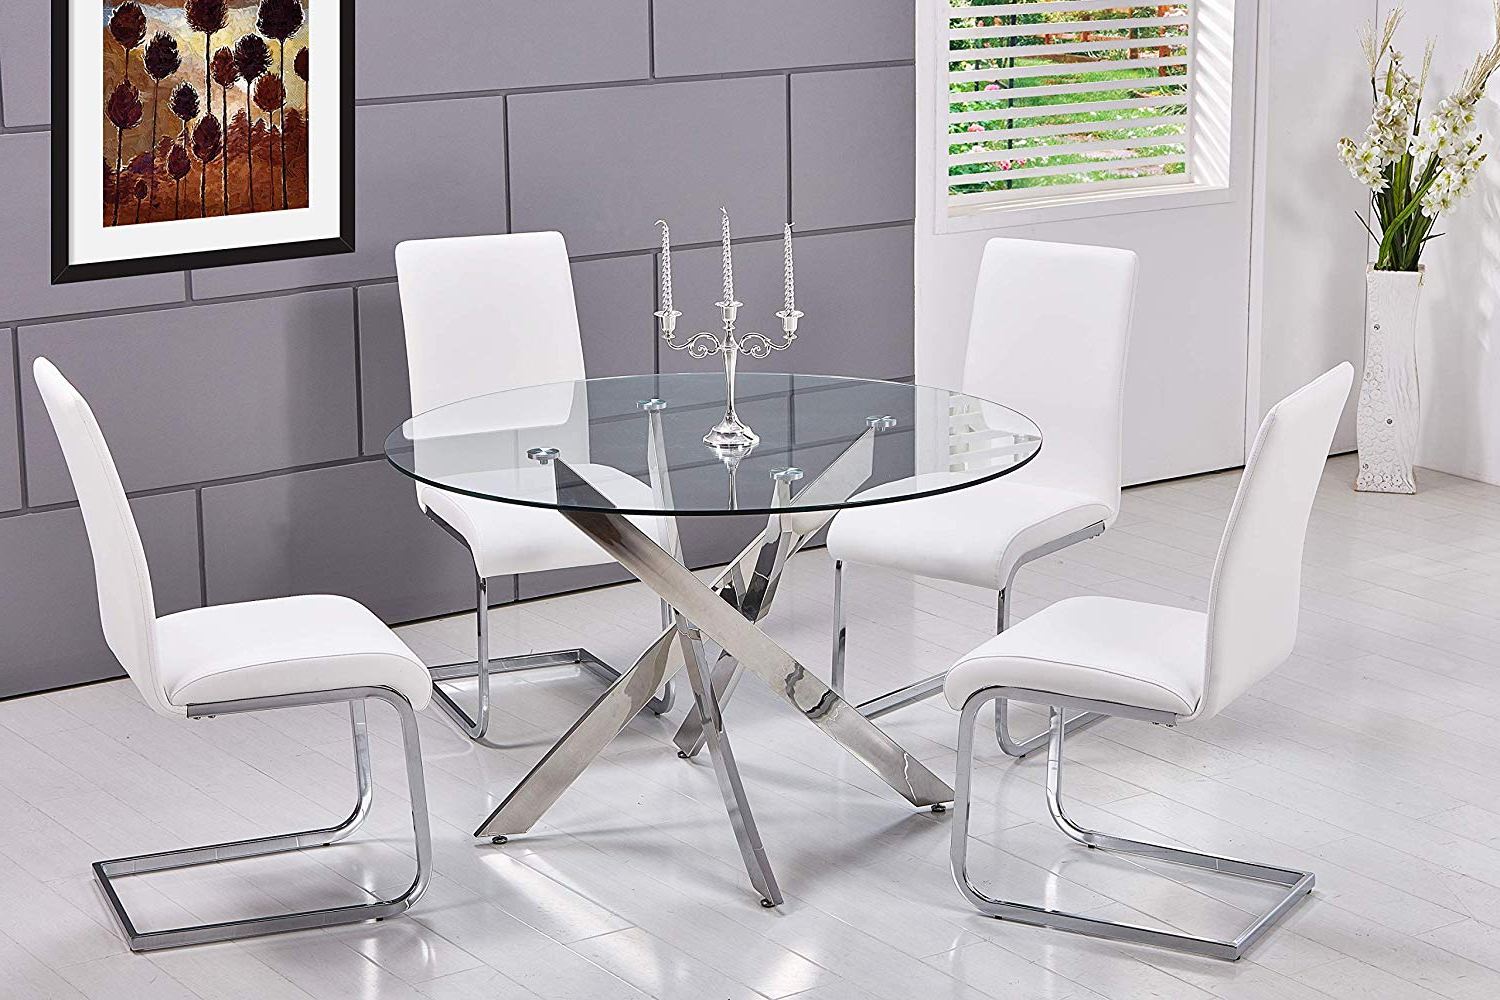 Fashionable Best Master Furniture T01 Mirage 5 Pcs Glass Top Modern Dining Set, White Regarding 4 Seater Round Wooden Dining Tables With Chrome Legs (View 2 of 30)